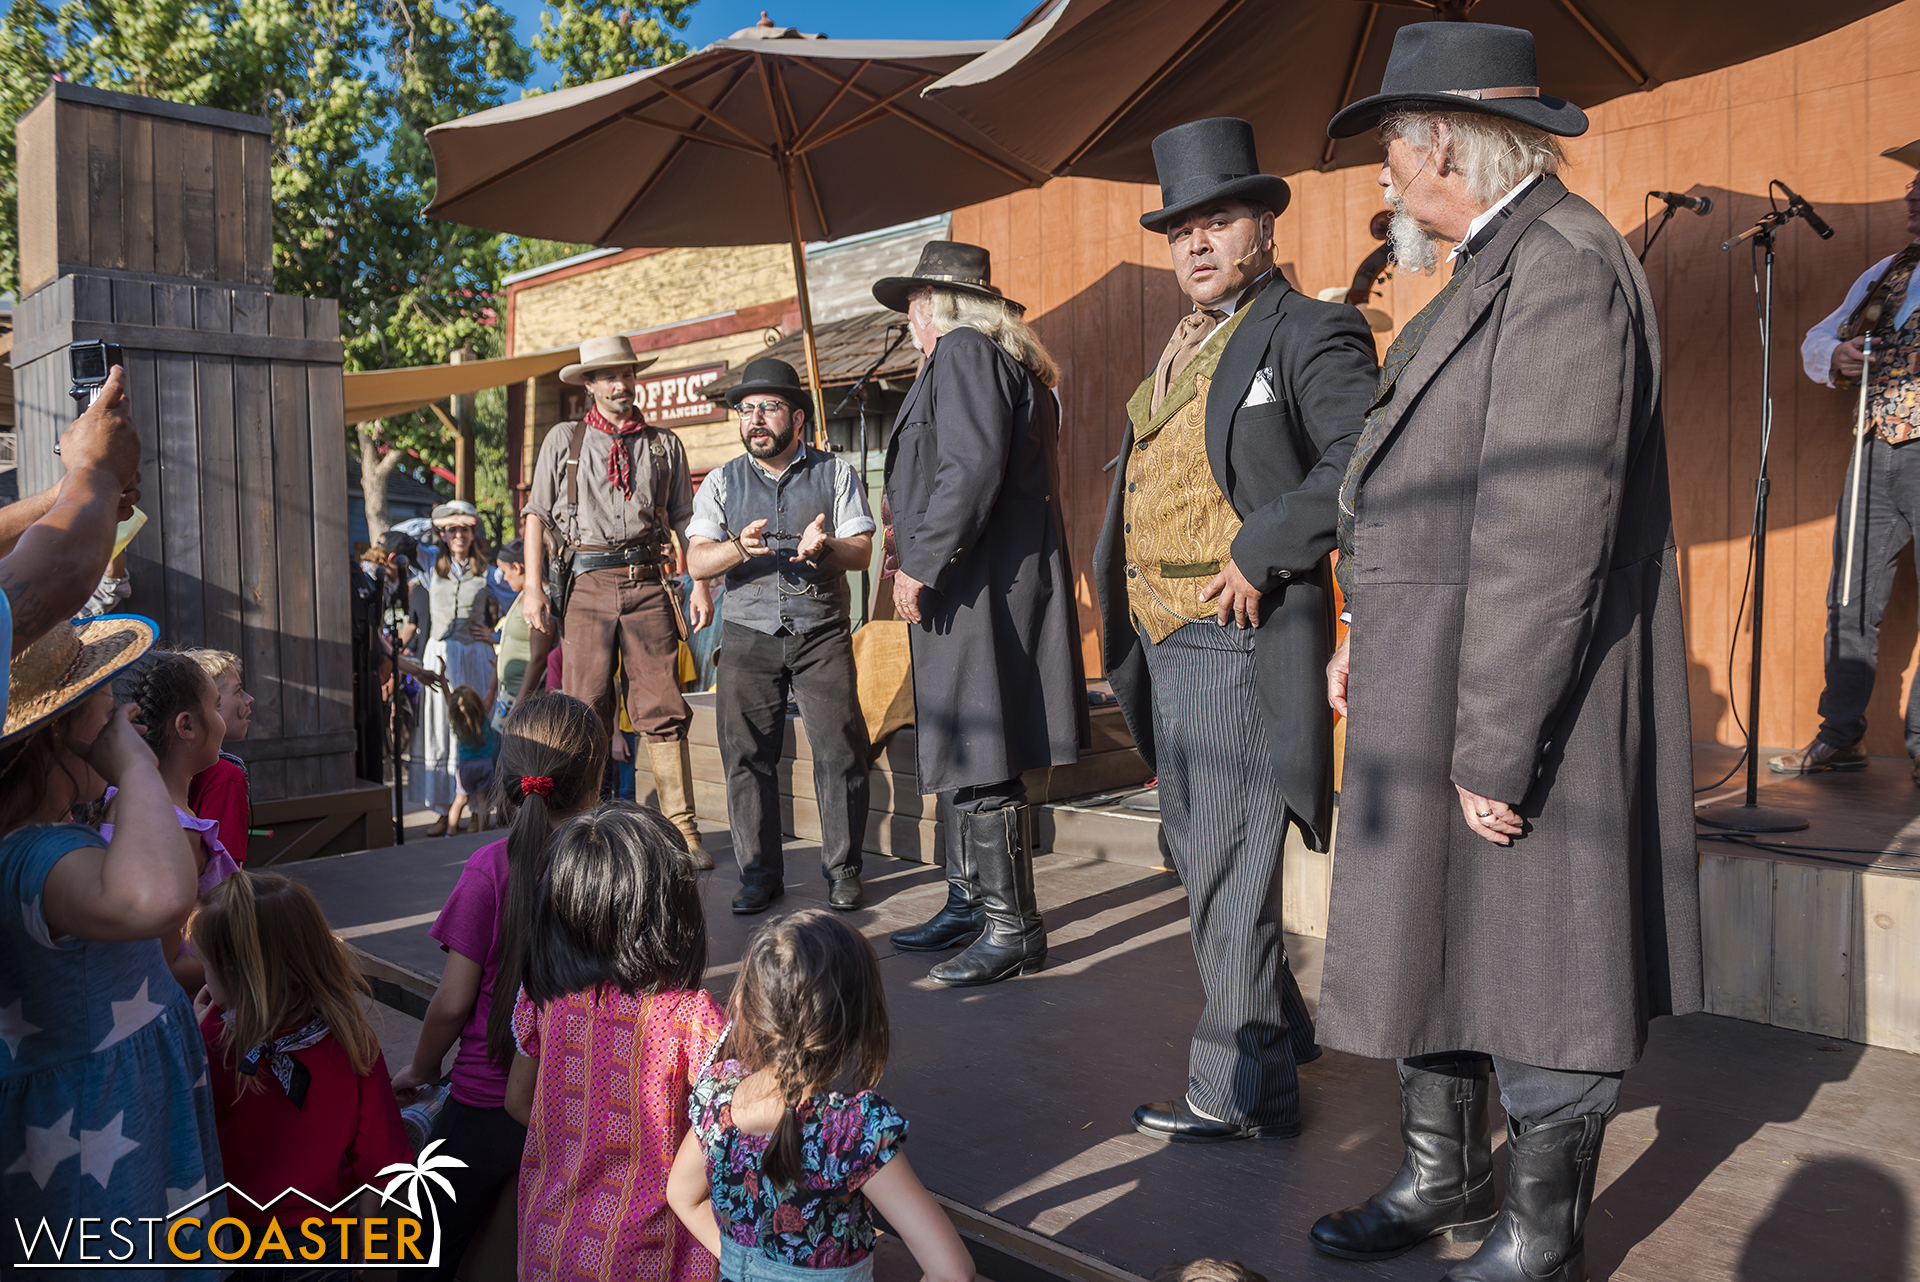 The festivities are interrupted, though, when Sheriff Wheeler announces the results of his investigation into the mysterious clues left in town have implicated a mastermind suspect.